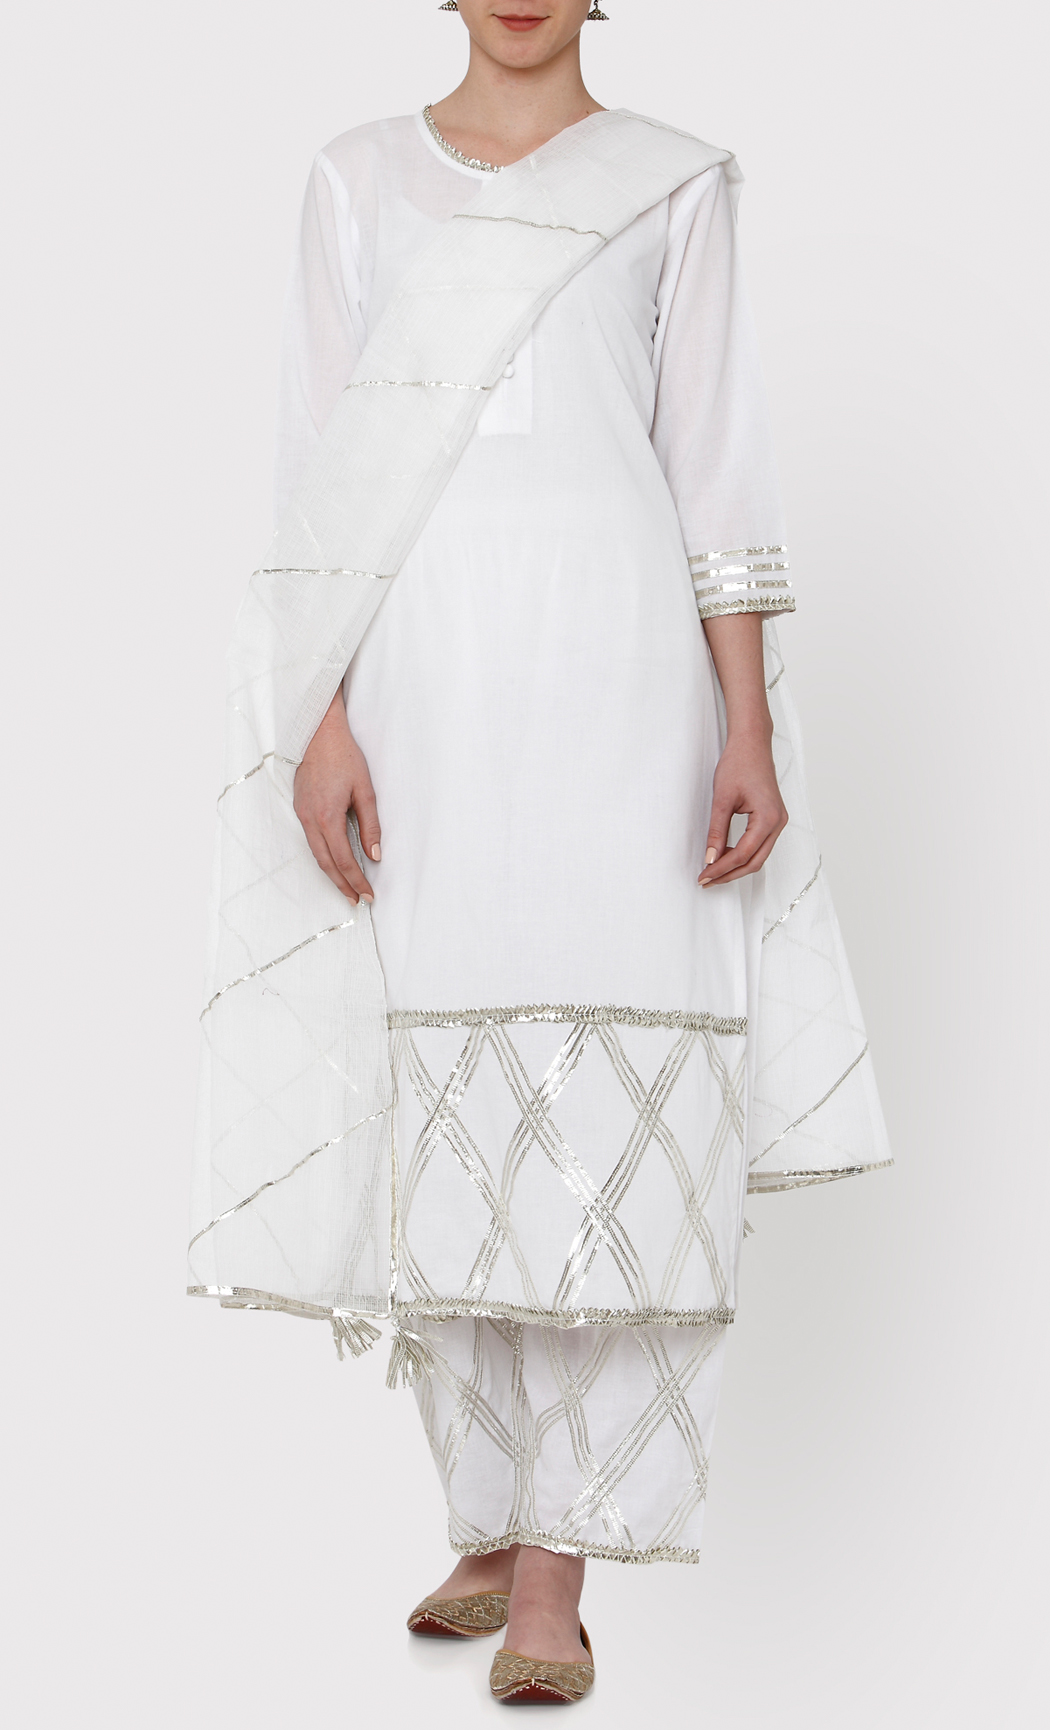 Padamja White Kurta and Pants Set. Buy Online.